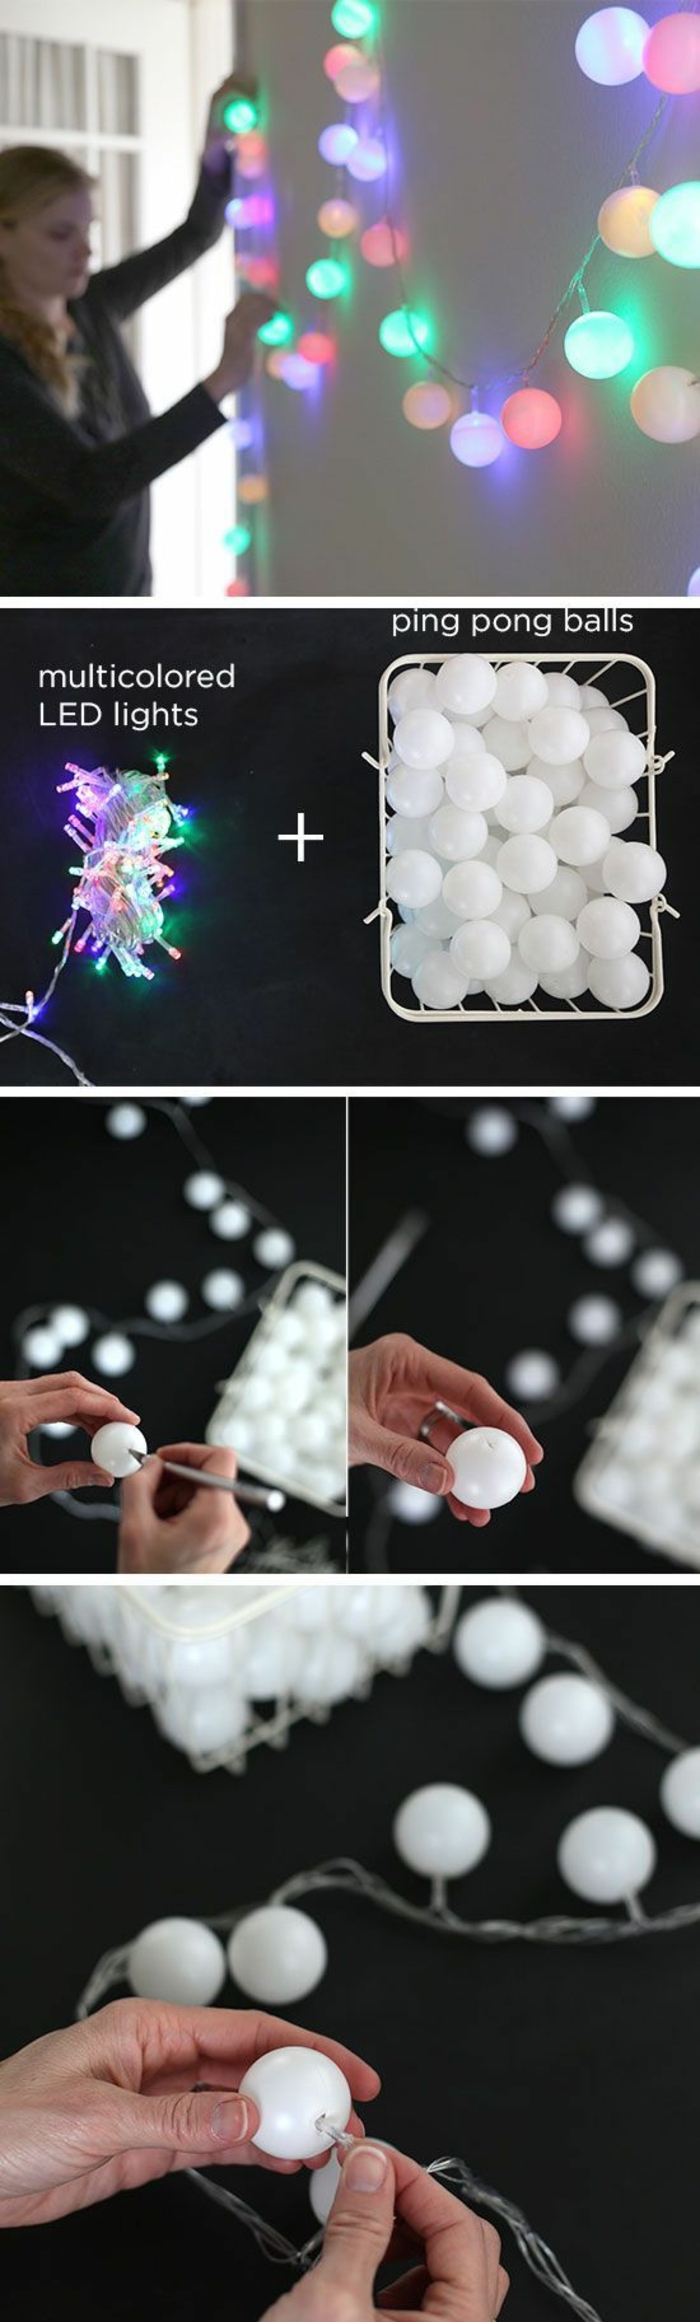 ping pong balls, fairy lights, fun diy projects, diy tutorial, step by step